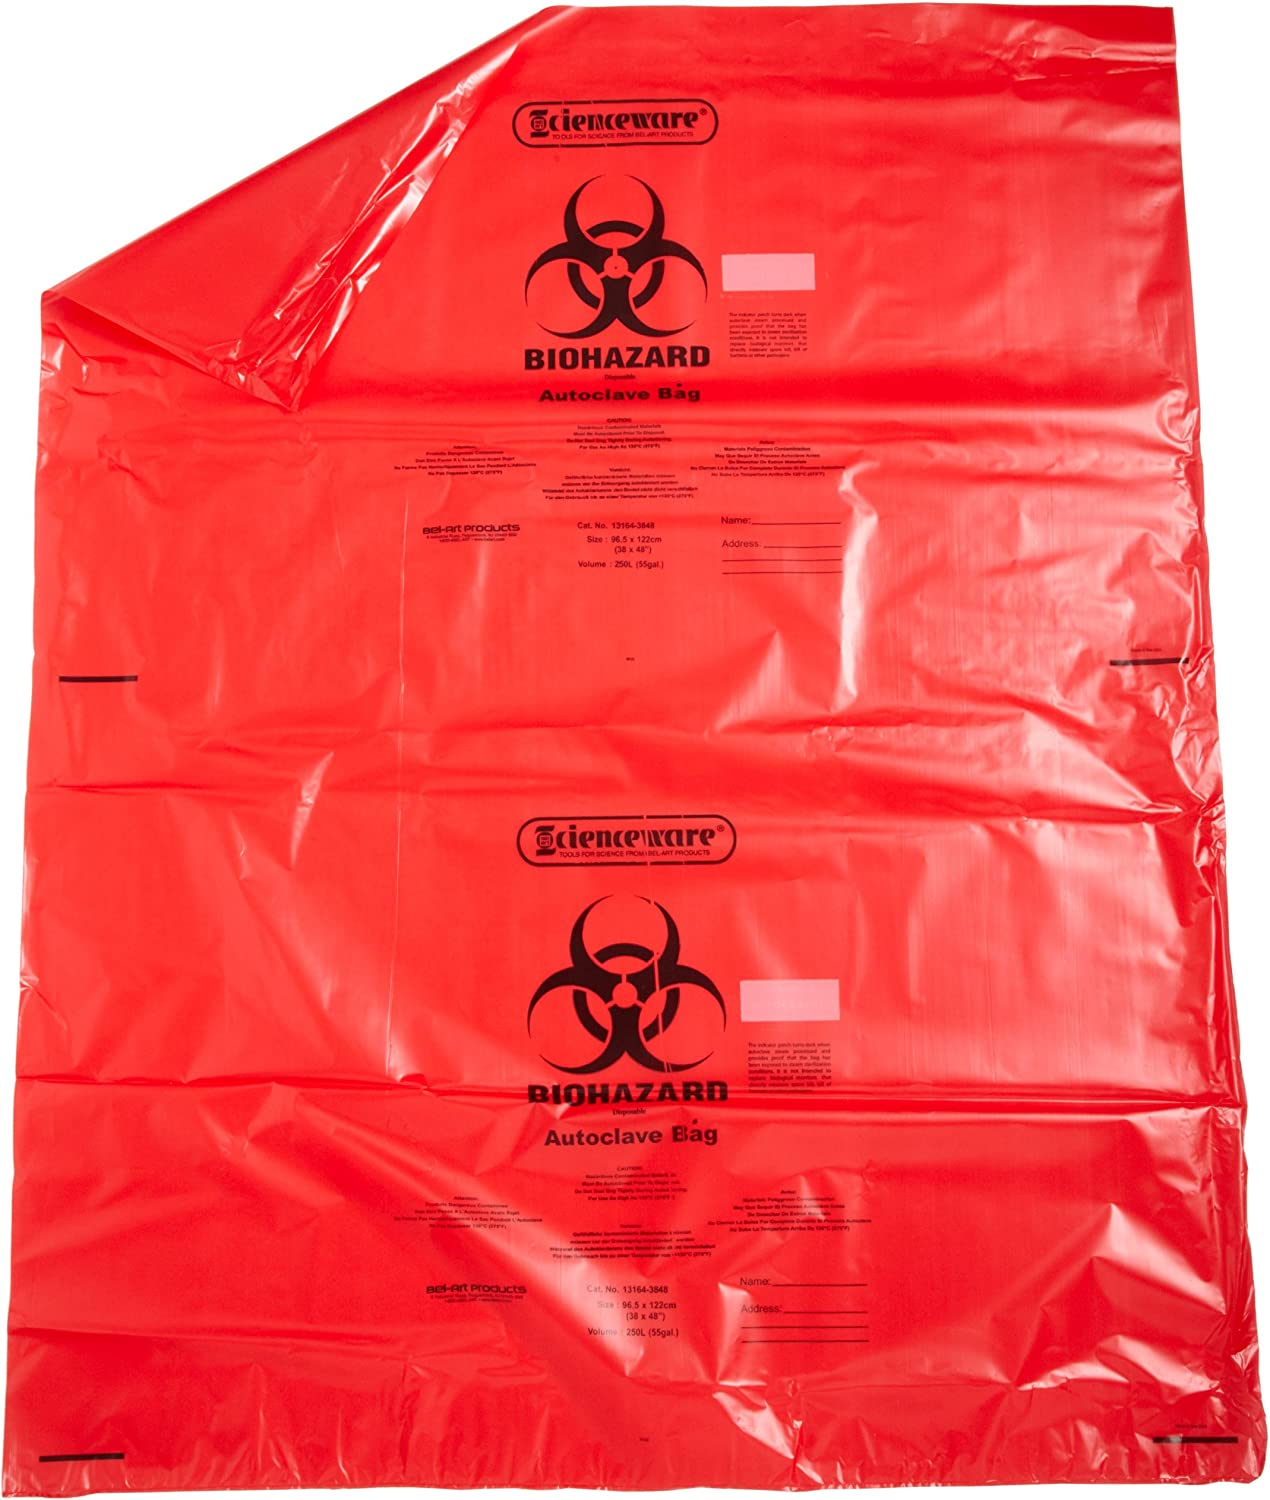 San Jose Mall SP Bel-Art Red Biohazard Disposal Steril Max 84% OFF Bags Warning with Label